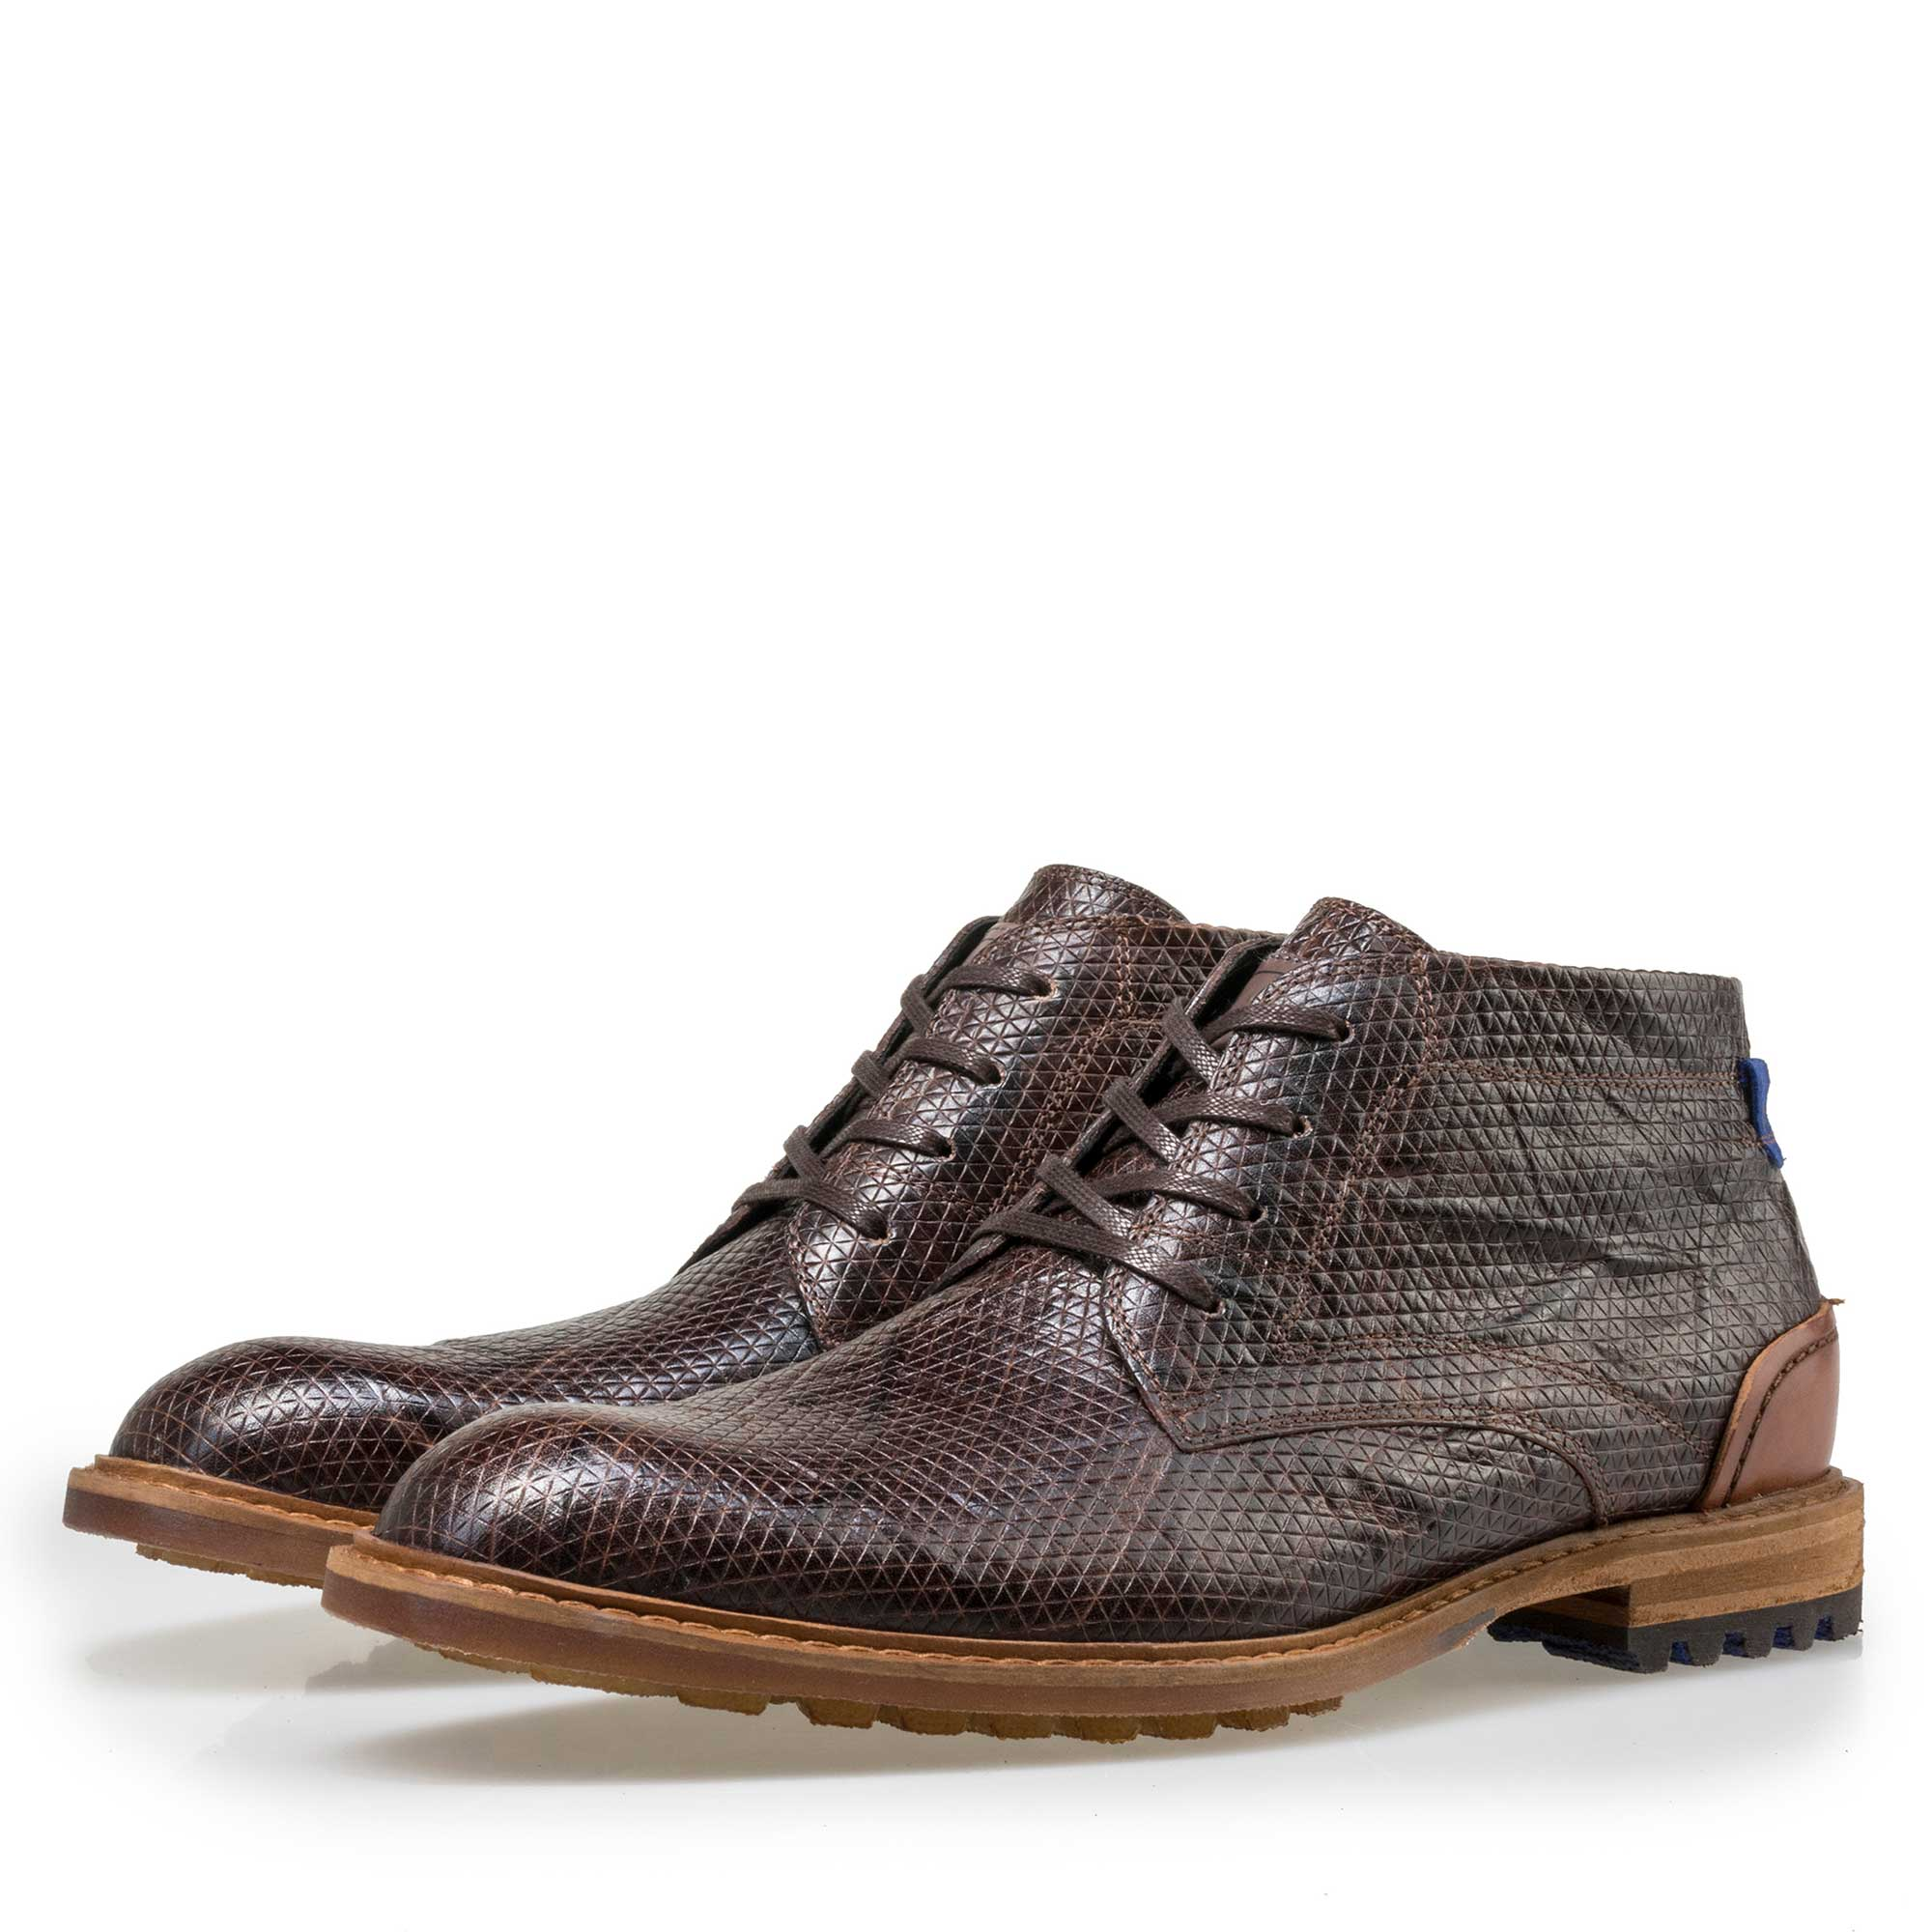 10786/21 - Floris van Bommel men's brown leather lace boot finished with a snake print